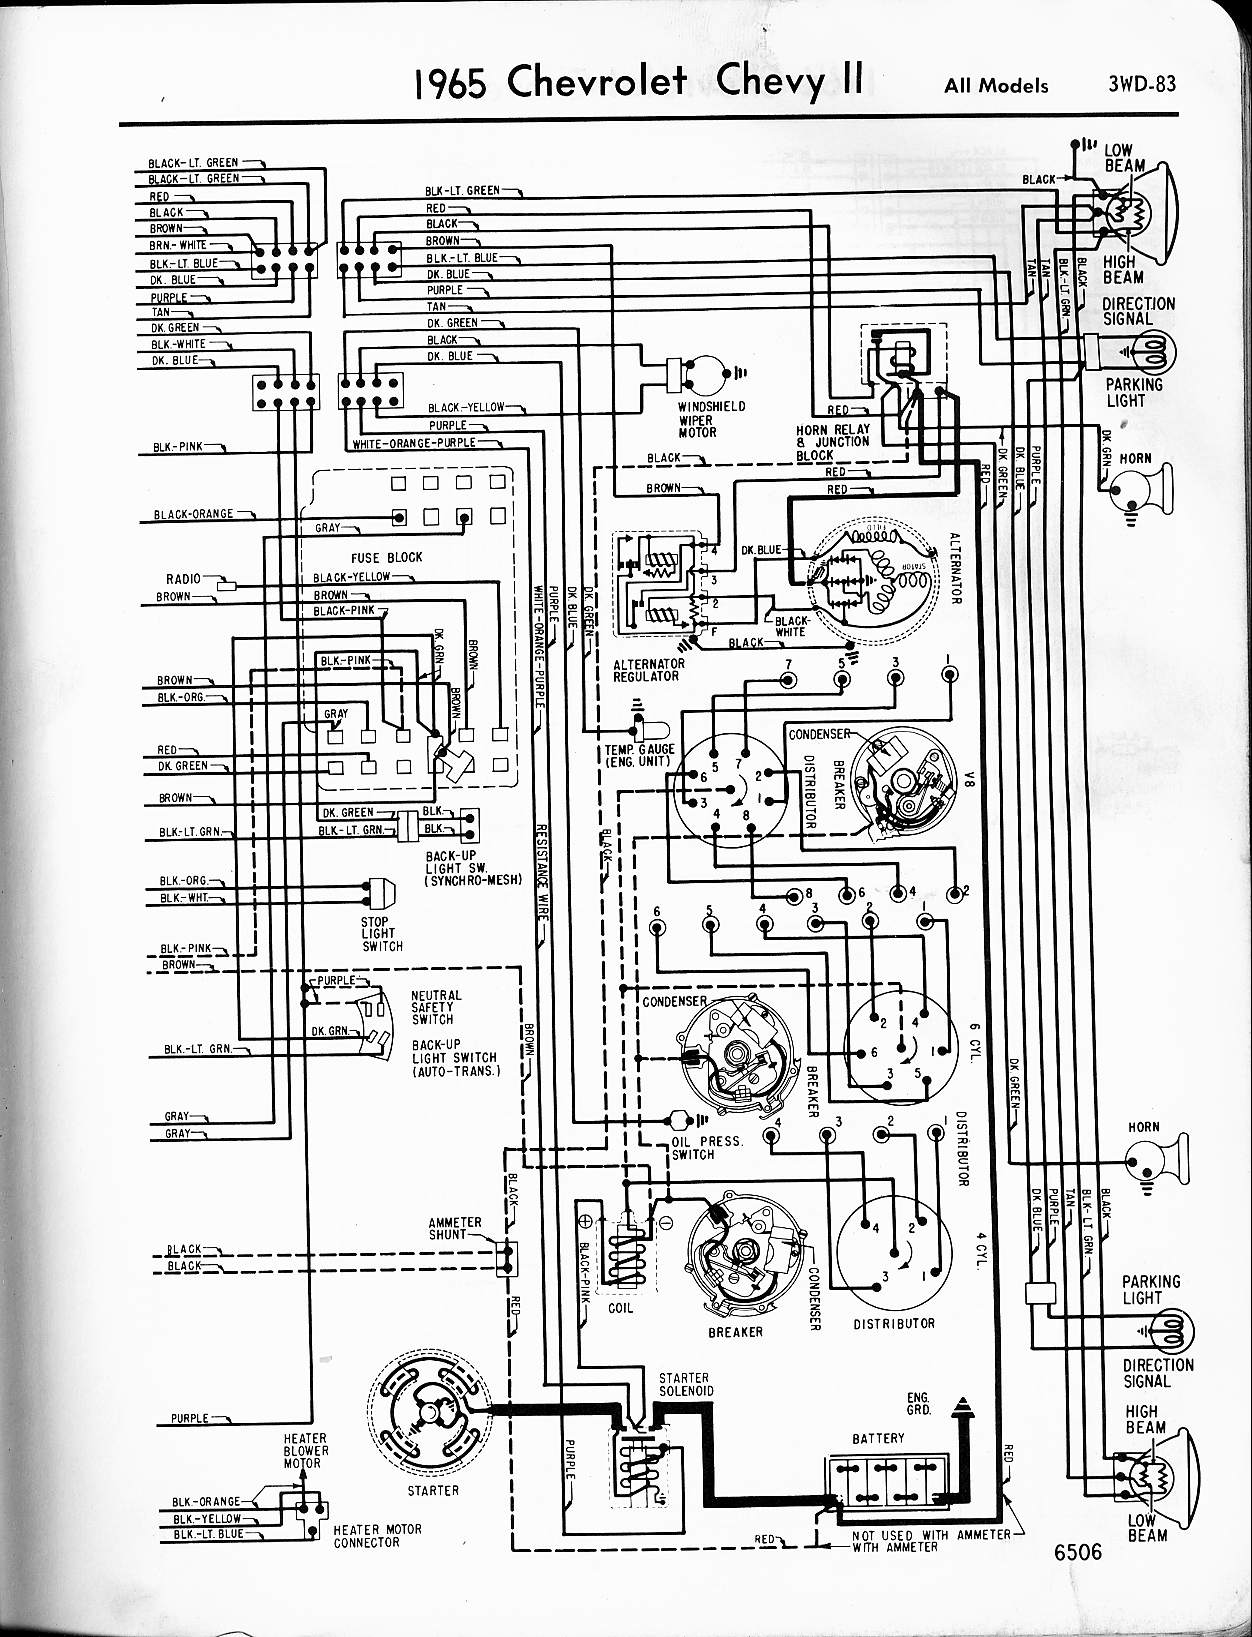 MWireChev65_3WD 083 chevy diagrams 1968 chevy wiring diagram at crackthecode.co